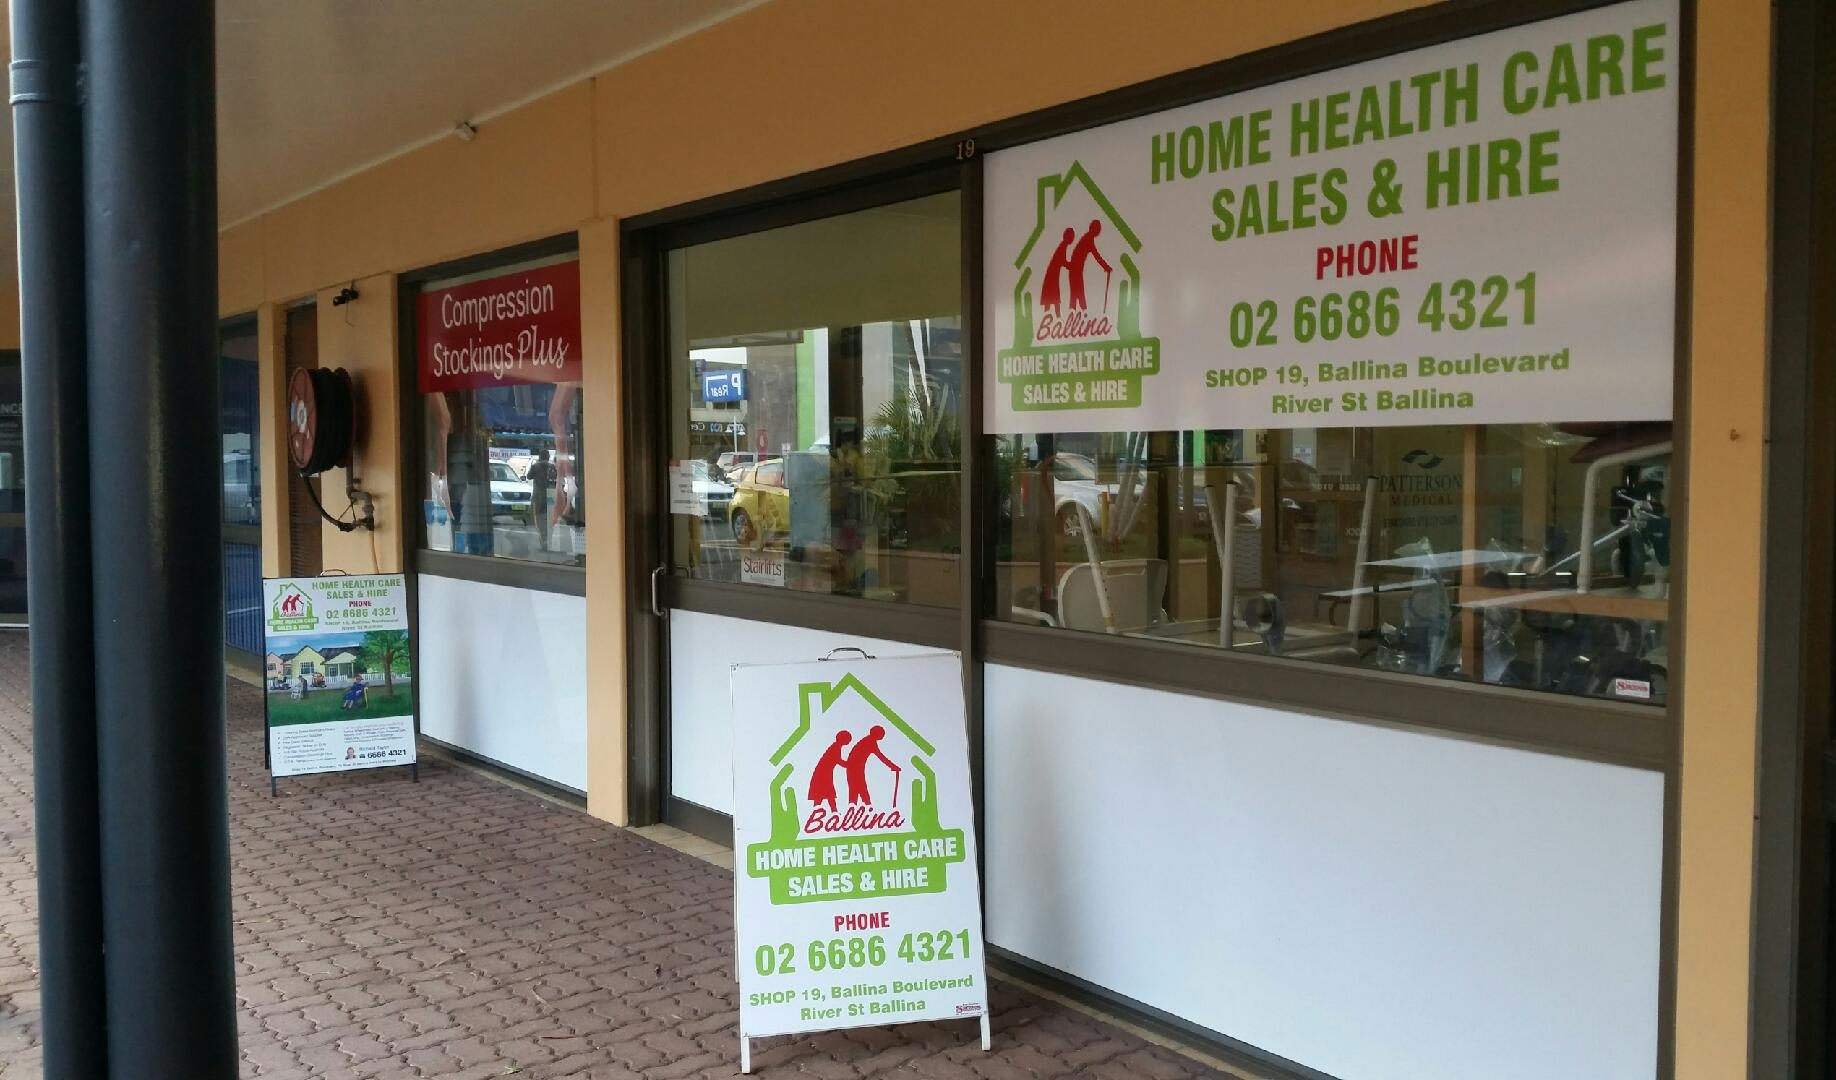 Ballina Home Healthcare Sales and Hire